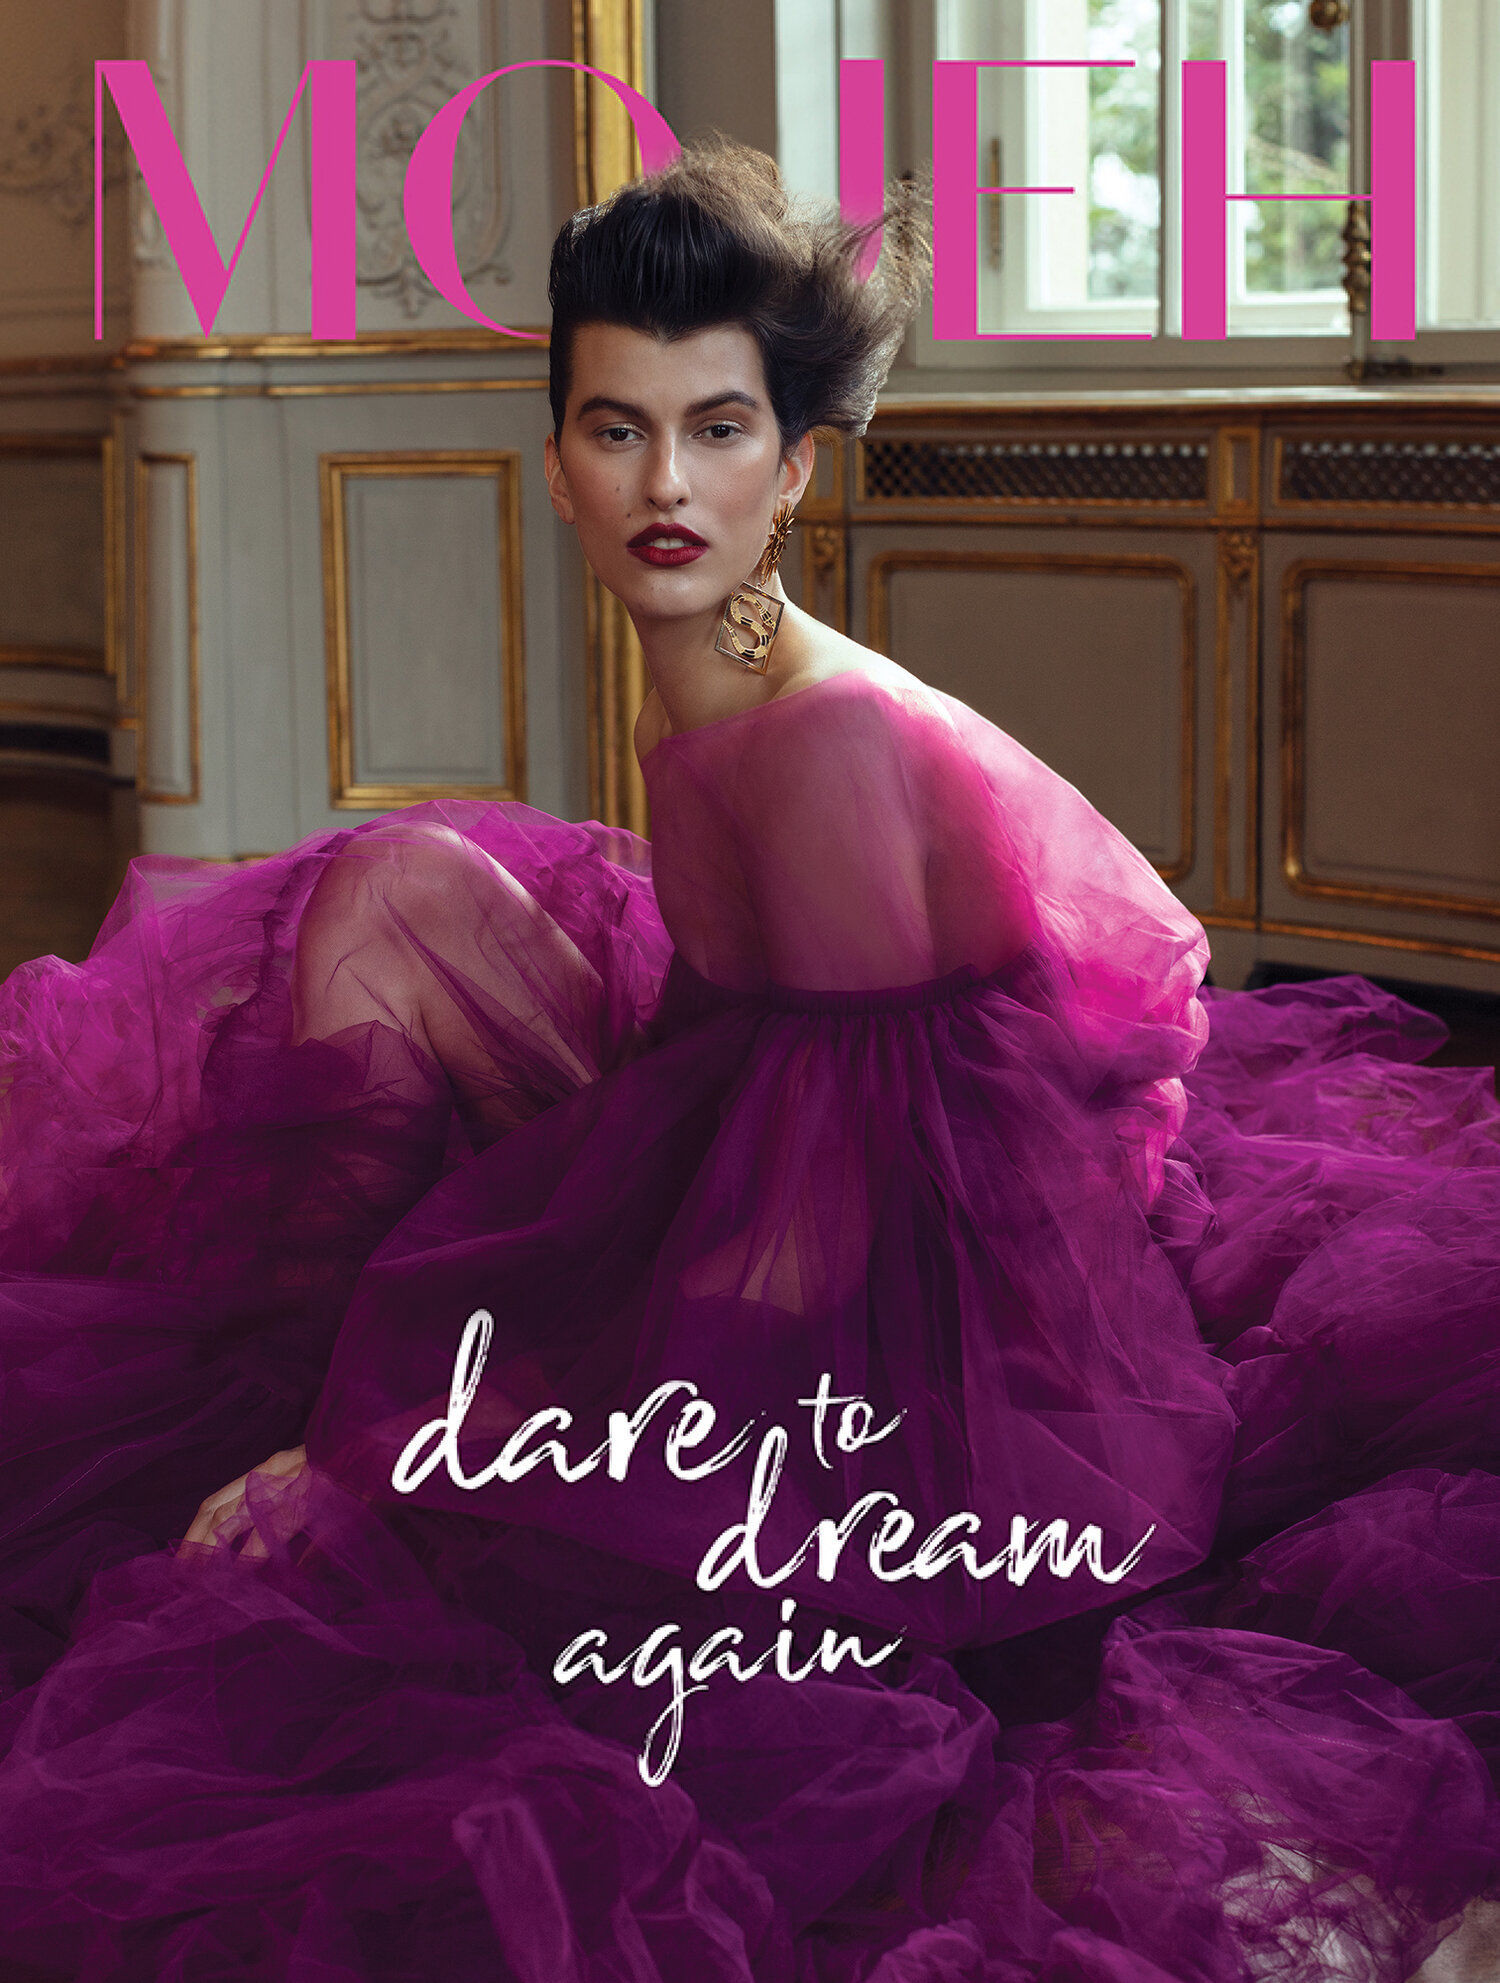 'Dare to dream again' MOJEH Cover Story by Vivienne Balla and Tamas Sabo c/o KLEIN PHOTOGRAPHEN